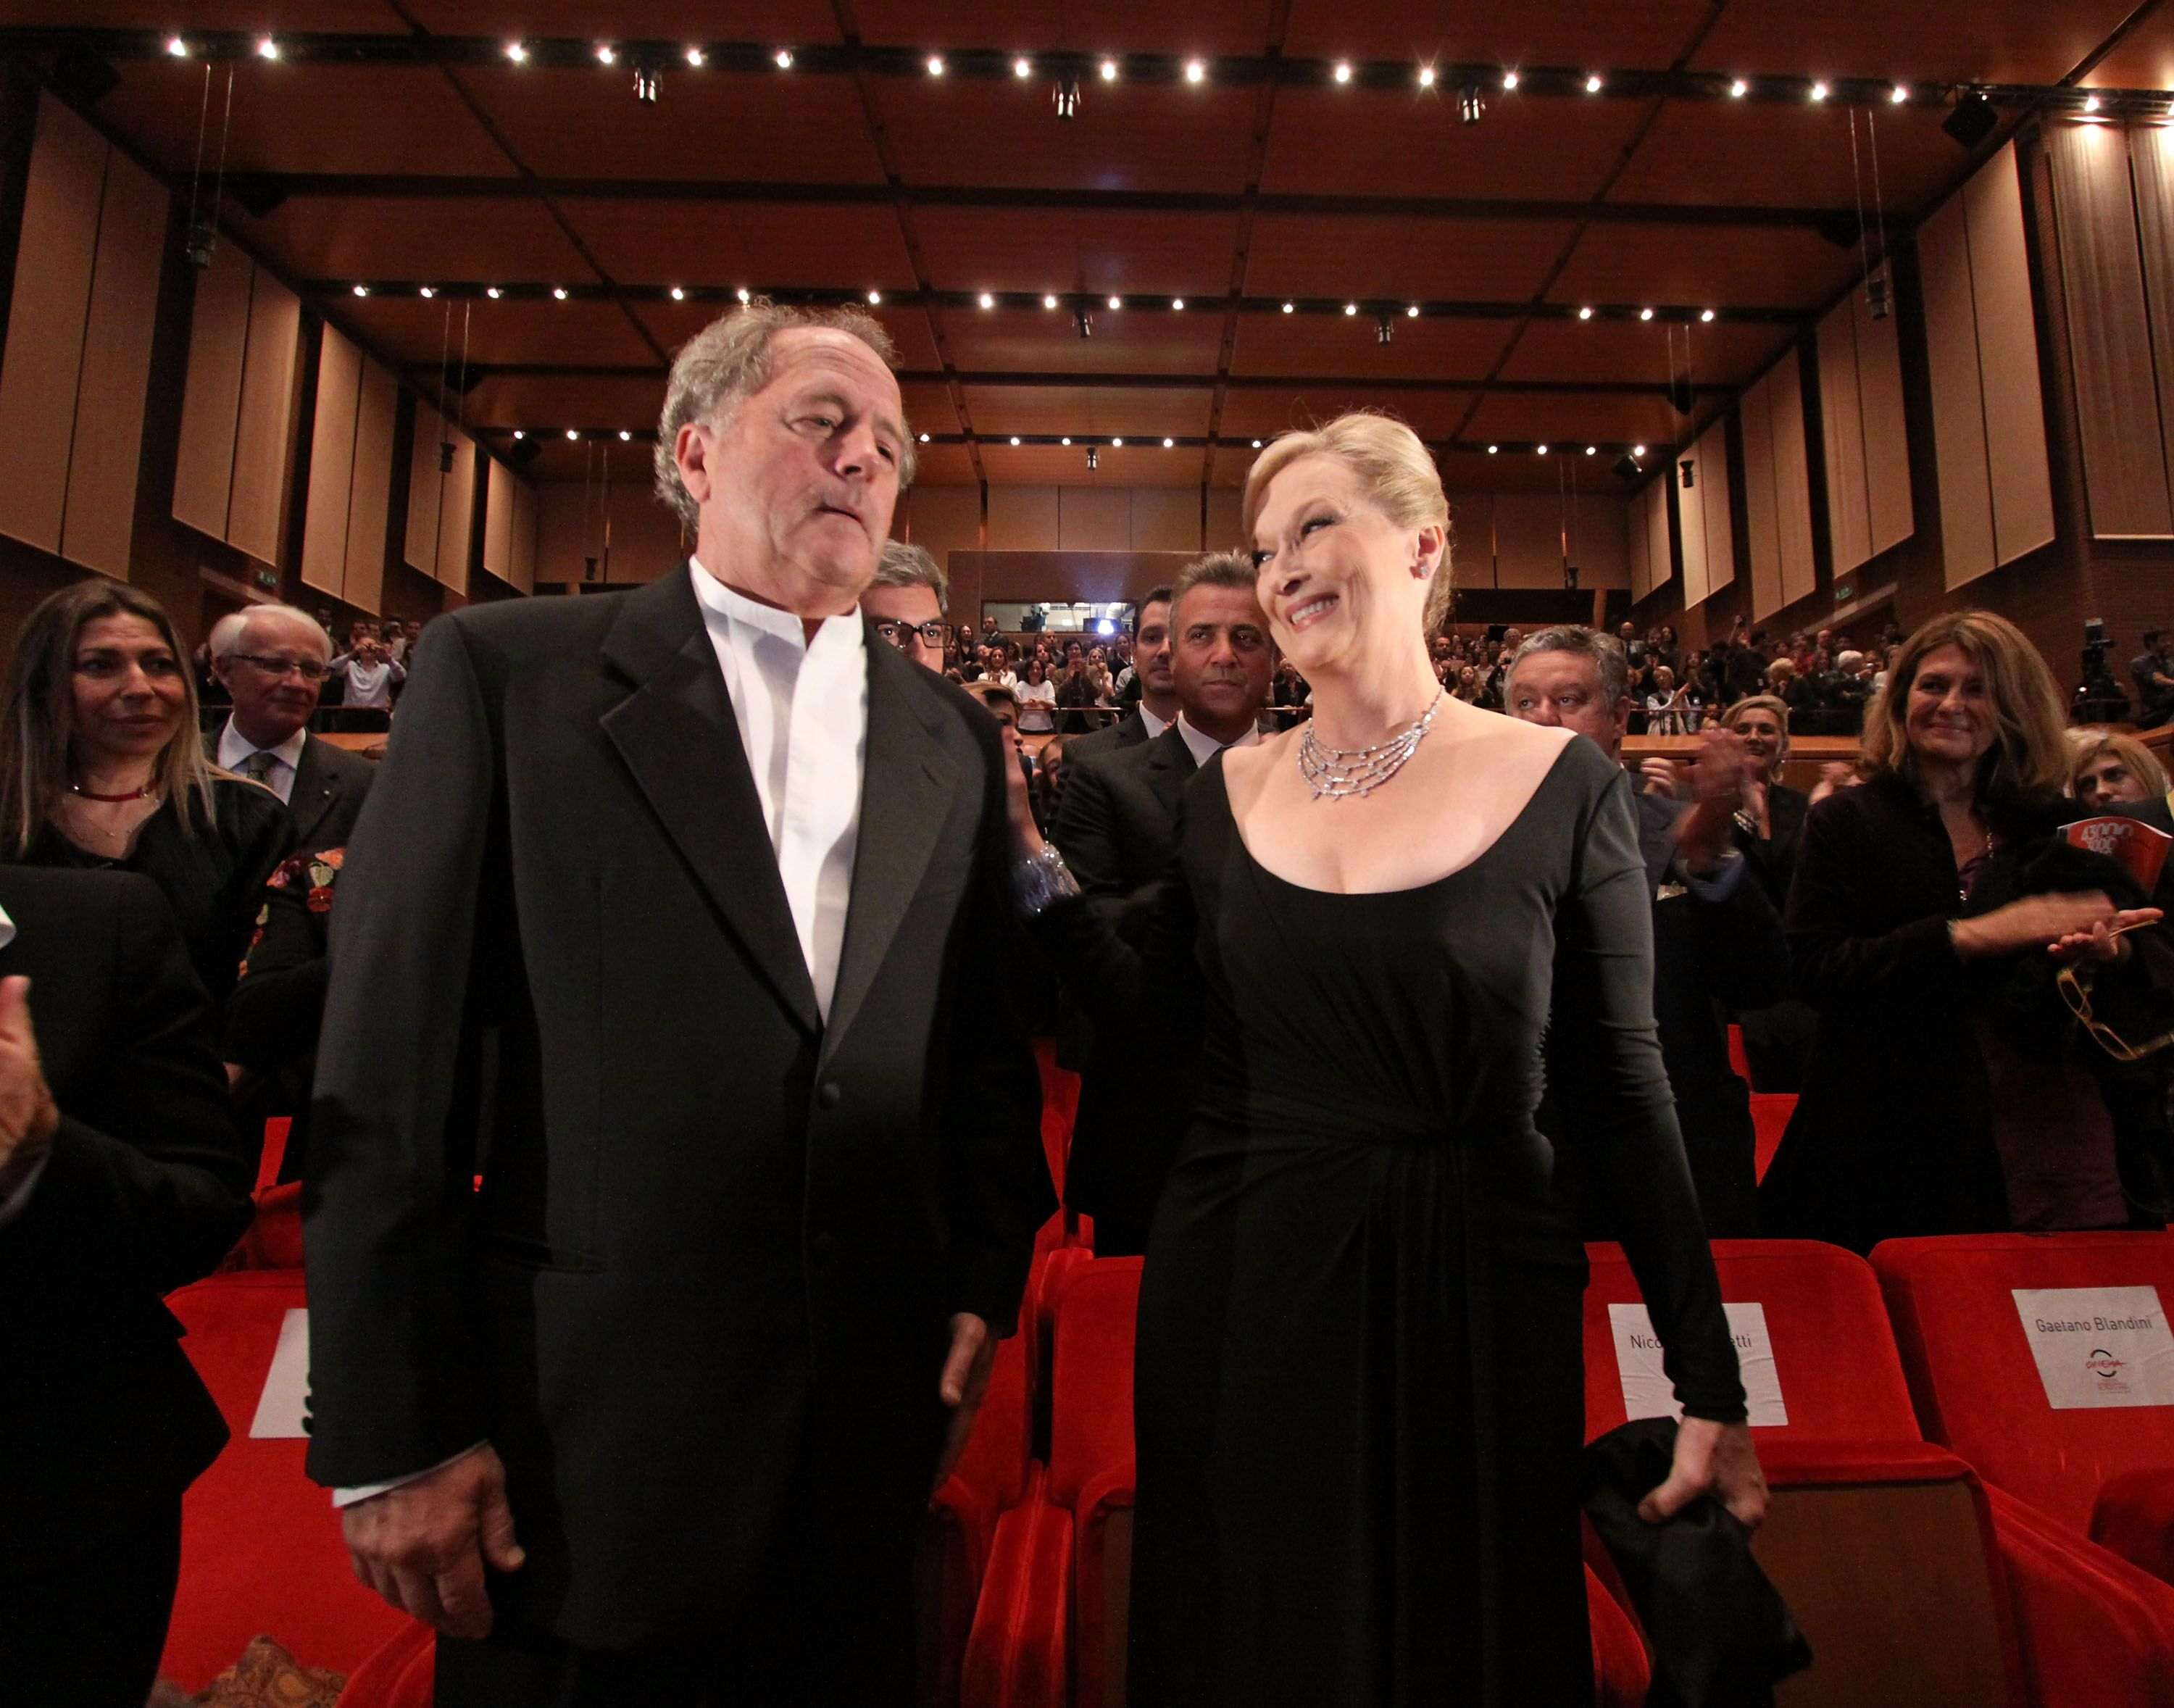 Meryl Streep and Don Gummer attend the Office Awards Ceremony. | Source: Getty Images